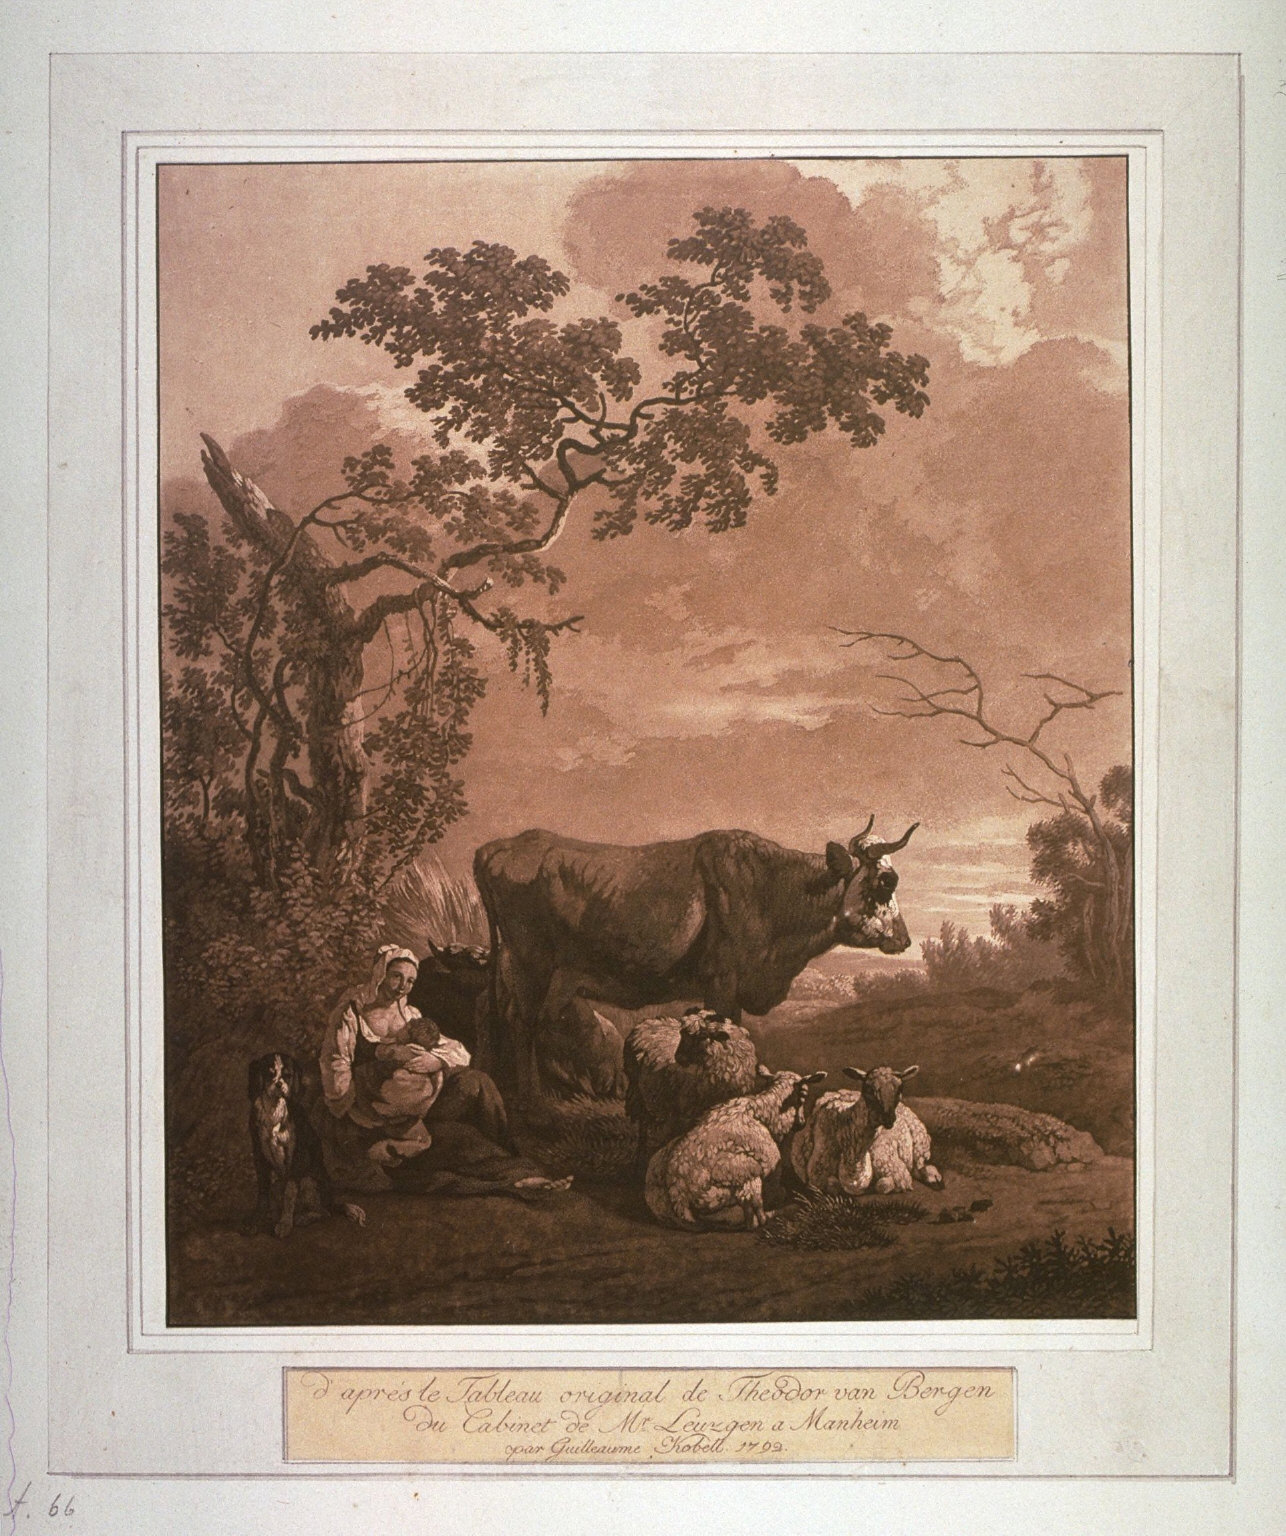 Landscape with woman and baby sheep and cow